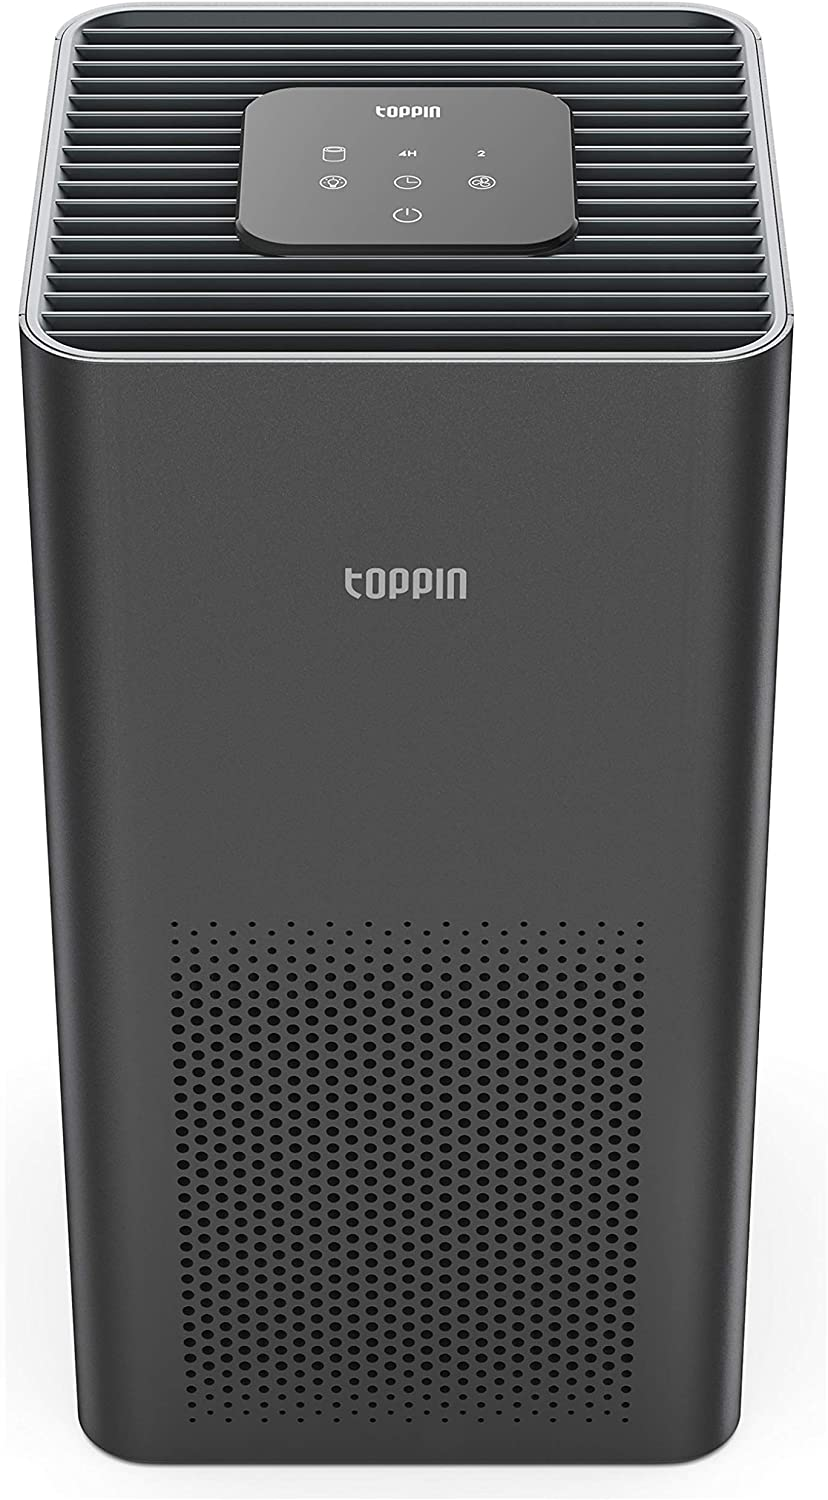 TOPPIN HEPA Air Purifiers for Home Large Room Up to 215ft²- Ultra-Silent Air Cleaner with Brushless Motor H13 HEPA Filter for 99.97% Pollen, Allergies, Pets Hair, Dander, Dust (1, black)